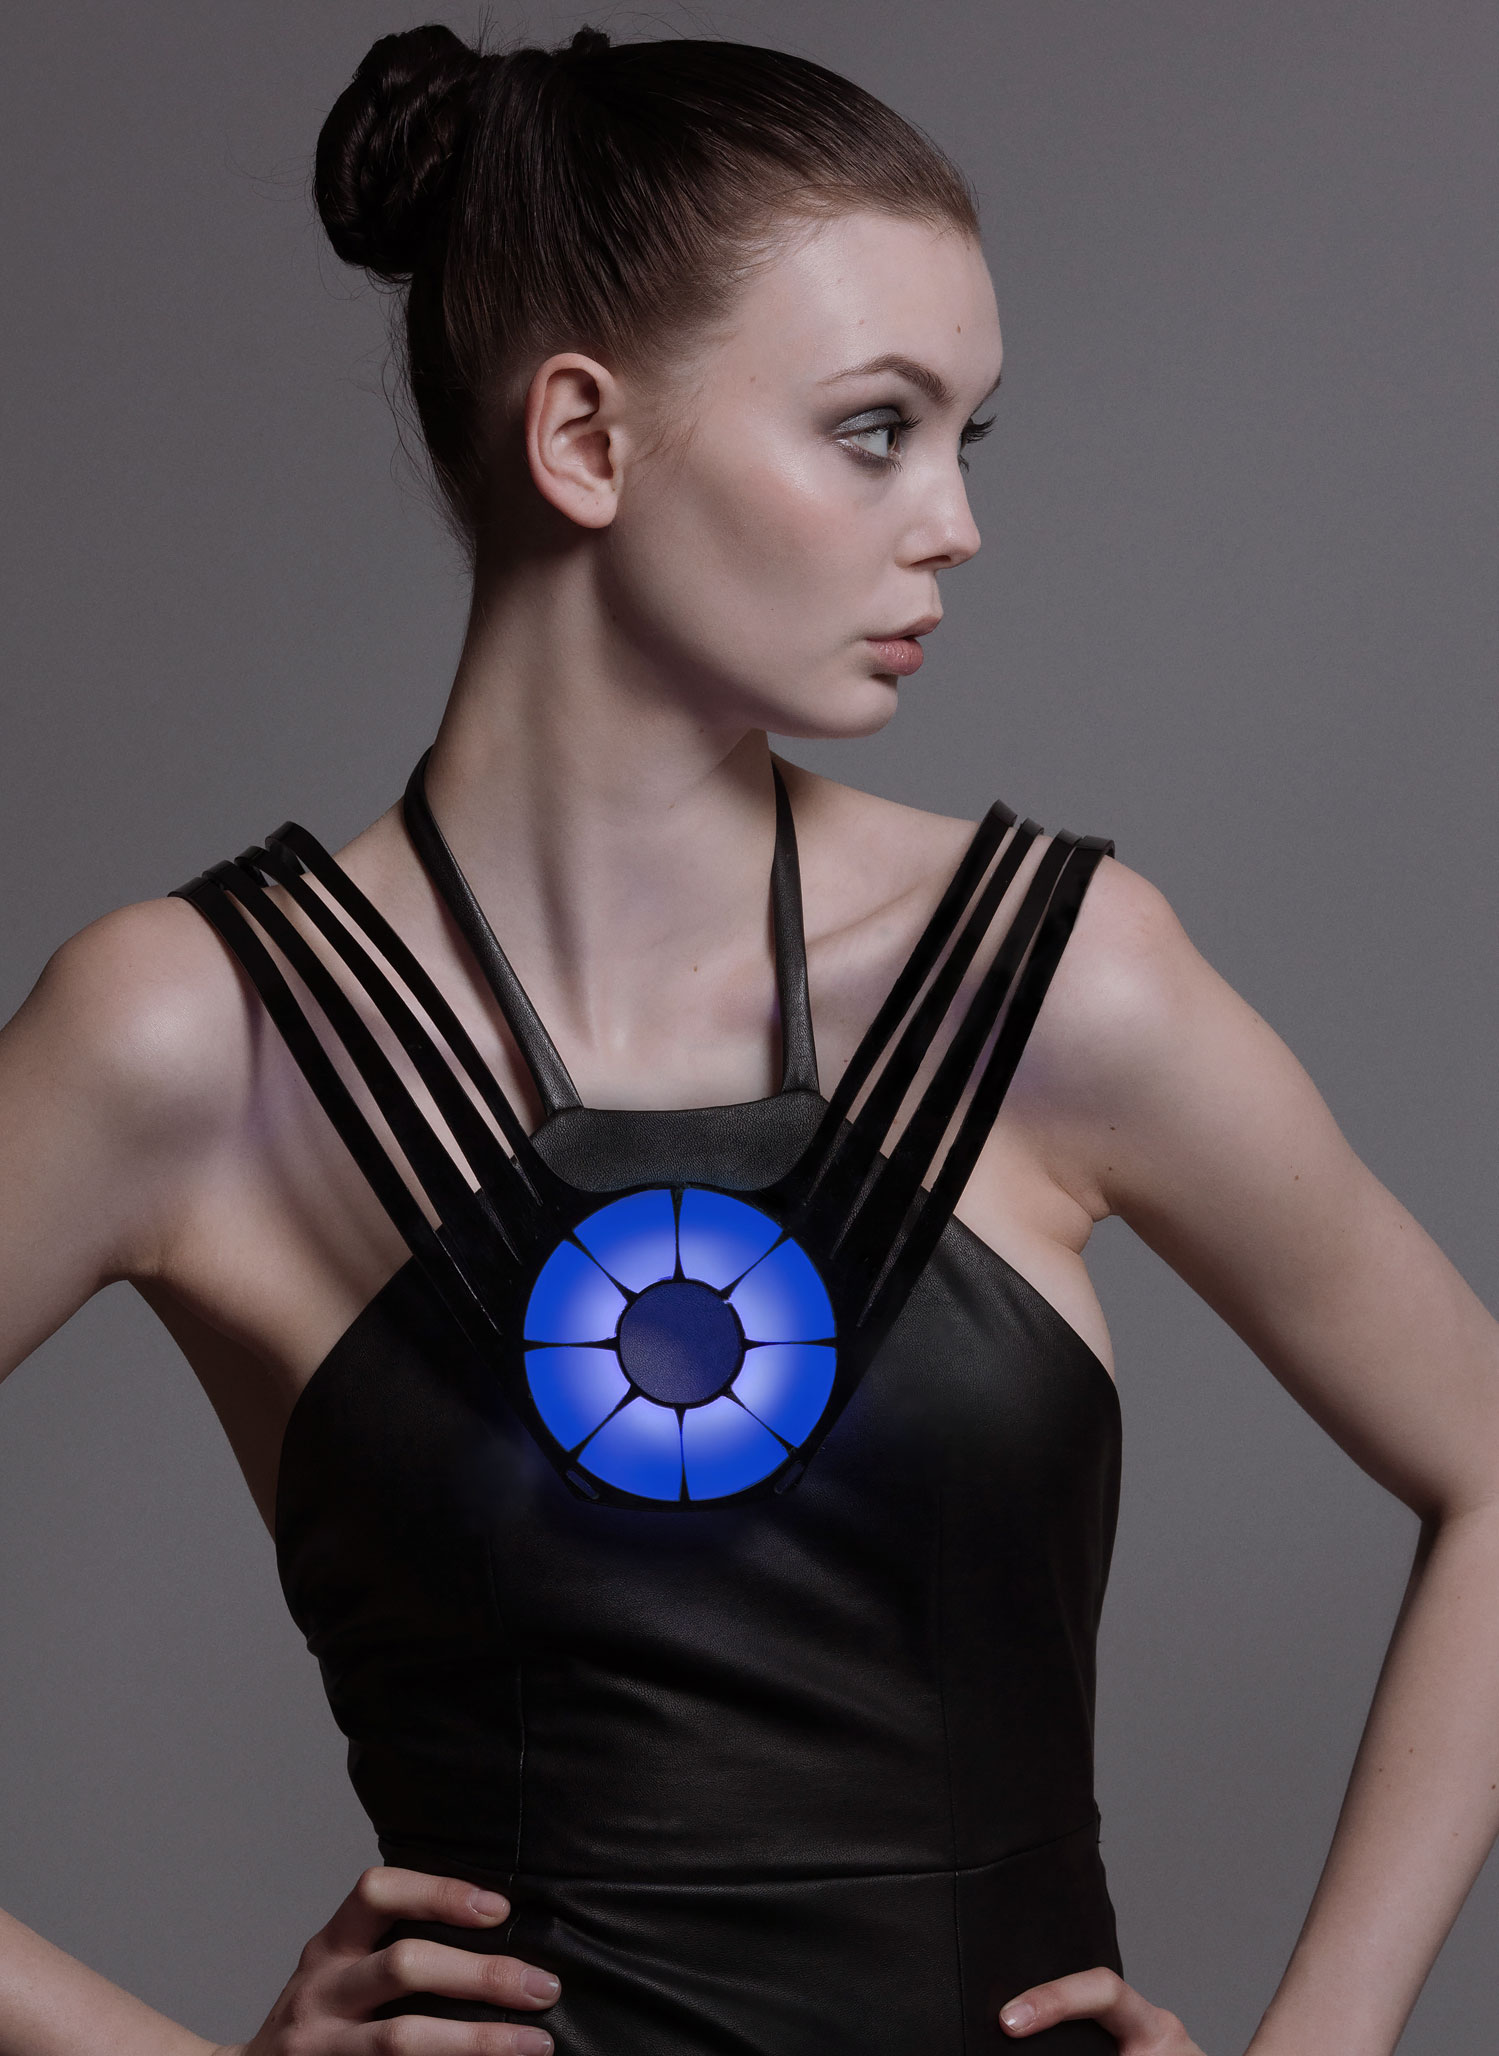 Picture of Monitor Dress - Connect Heart Signals to the IoT